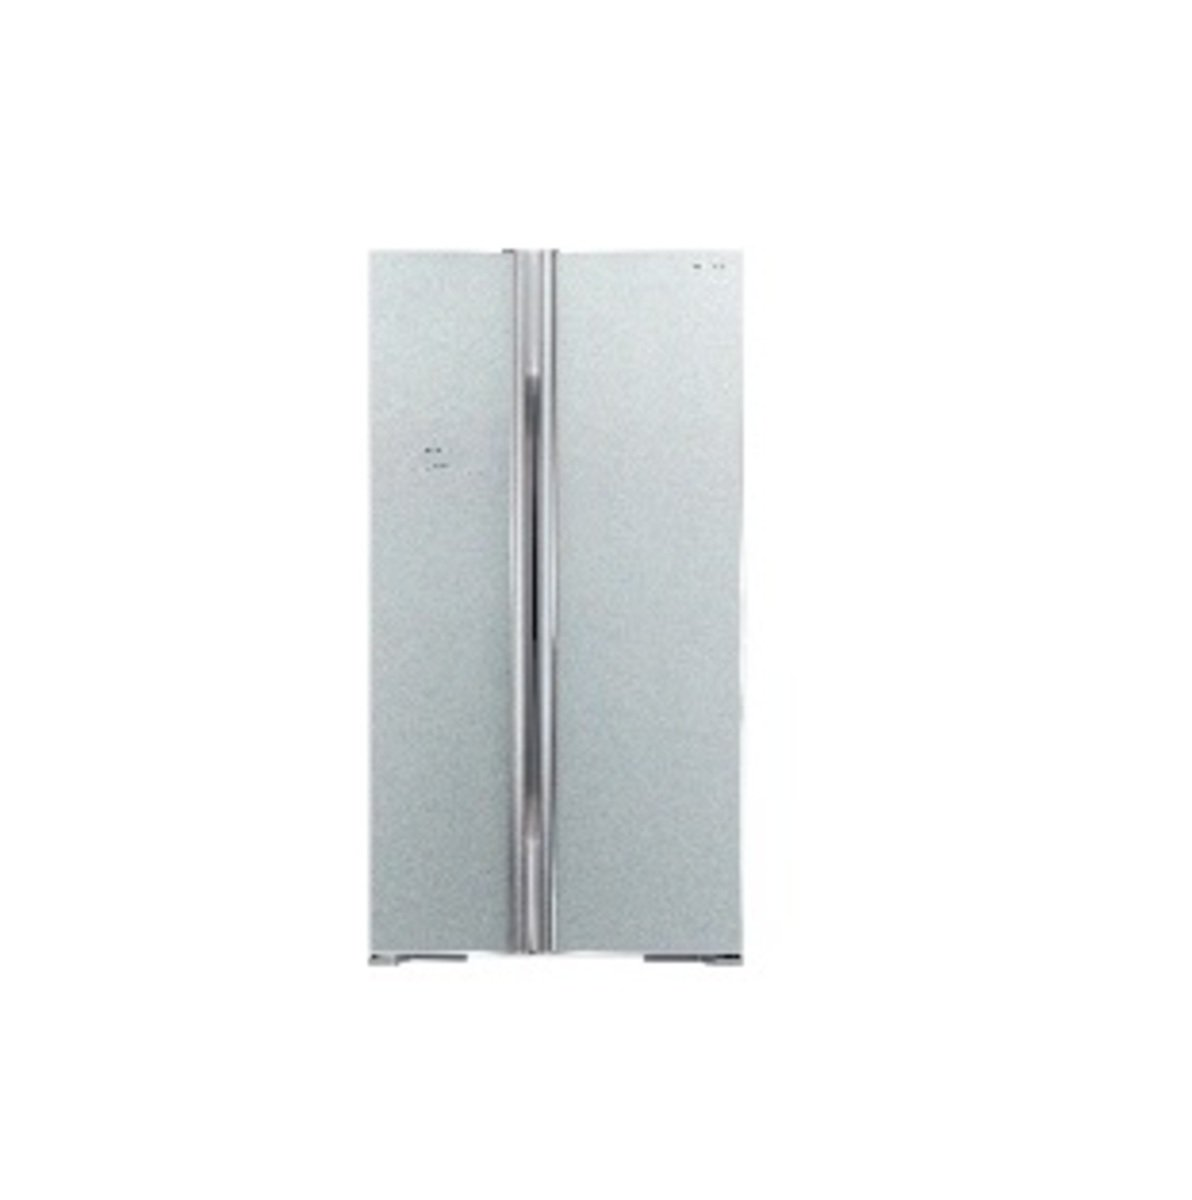 595L Side-by-Side Refrigerator RS700P2H (GS) (Not require removal service)